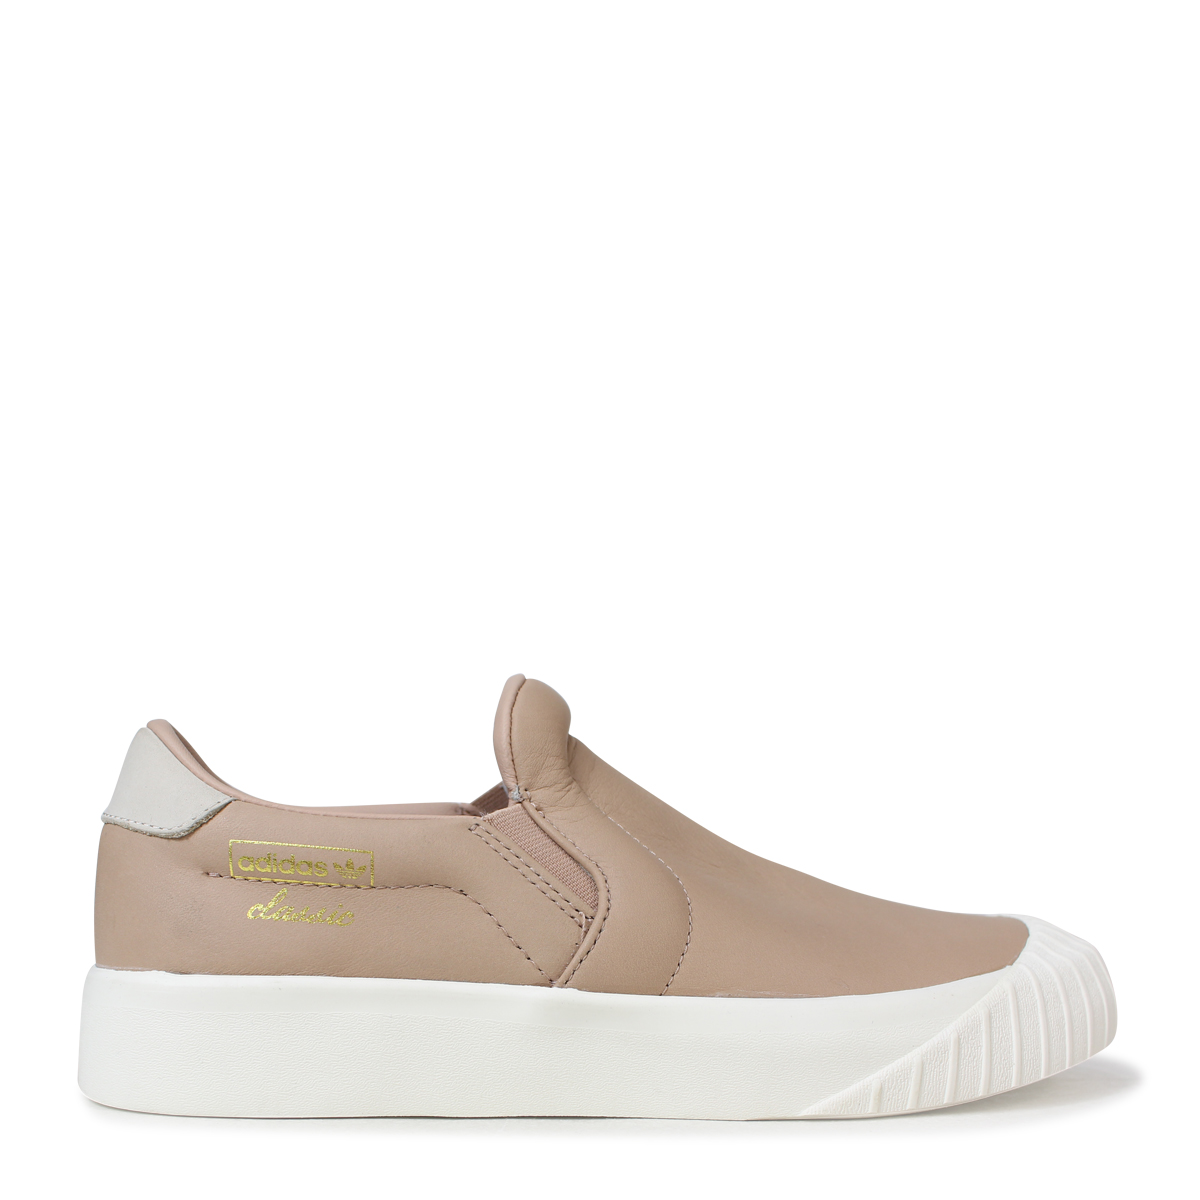 3472050e9de adidas Originals EVERYN SLIPON W Adidas originals Ebb phosphorus Lady s slip-ons  sneakers CQ2061 beige  184